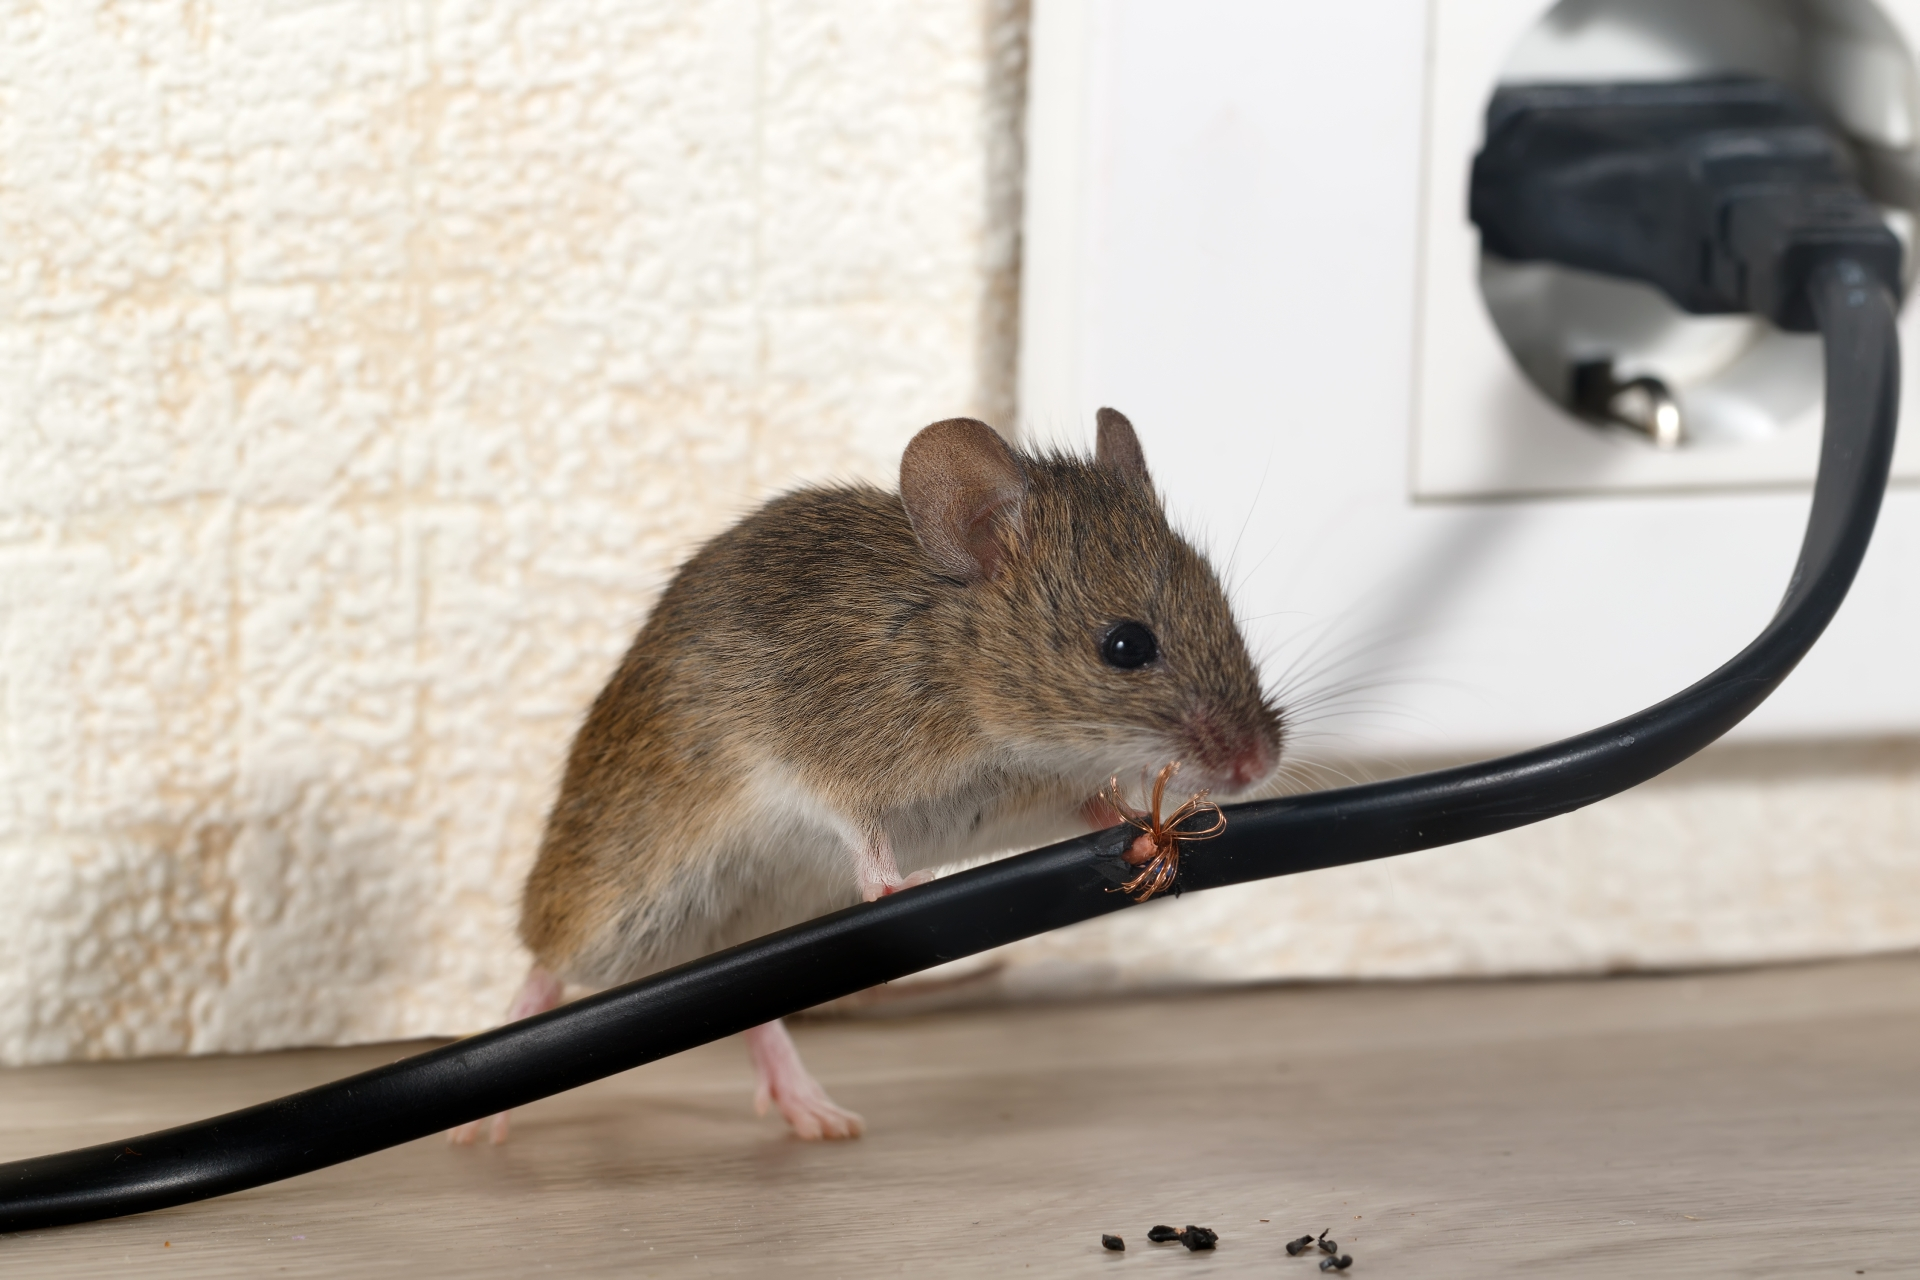 Mice Infestation, Pest Control in Staines-upon-Thames, Egham Hythe, TW18. Call Now 020 8166 9746